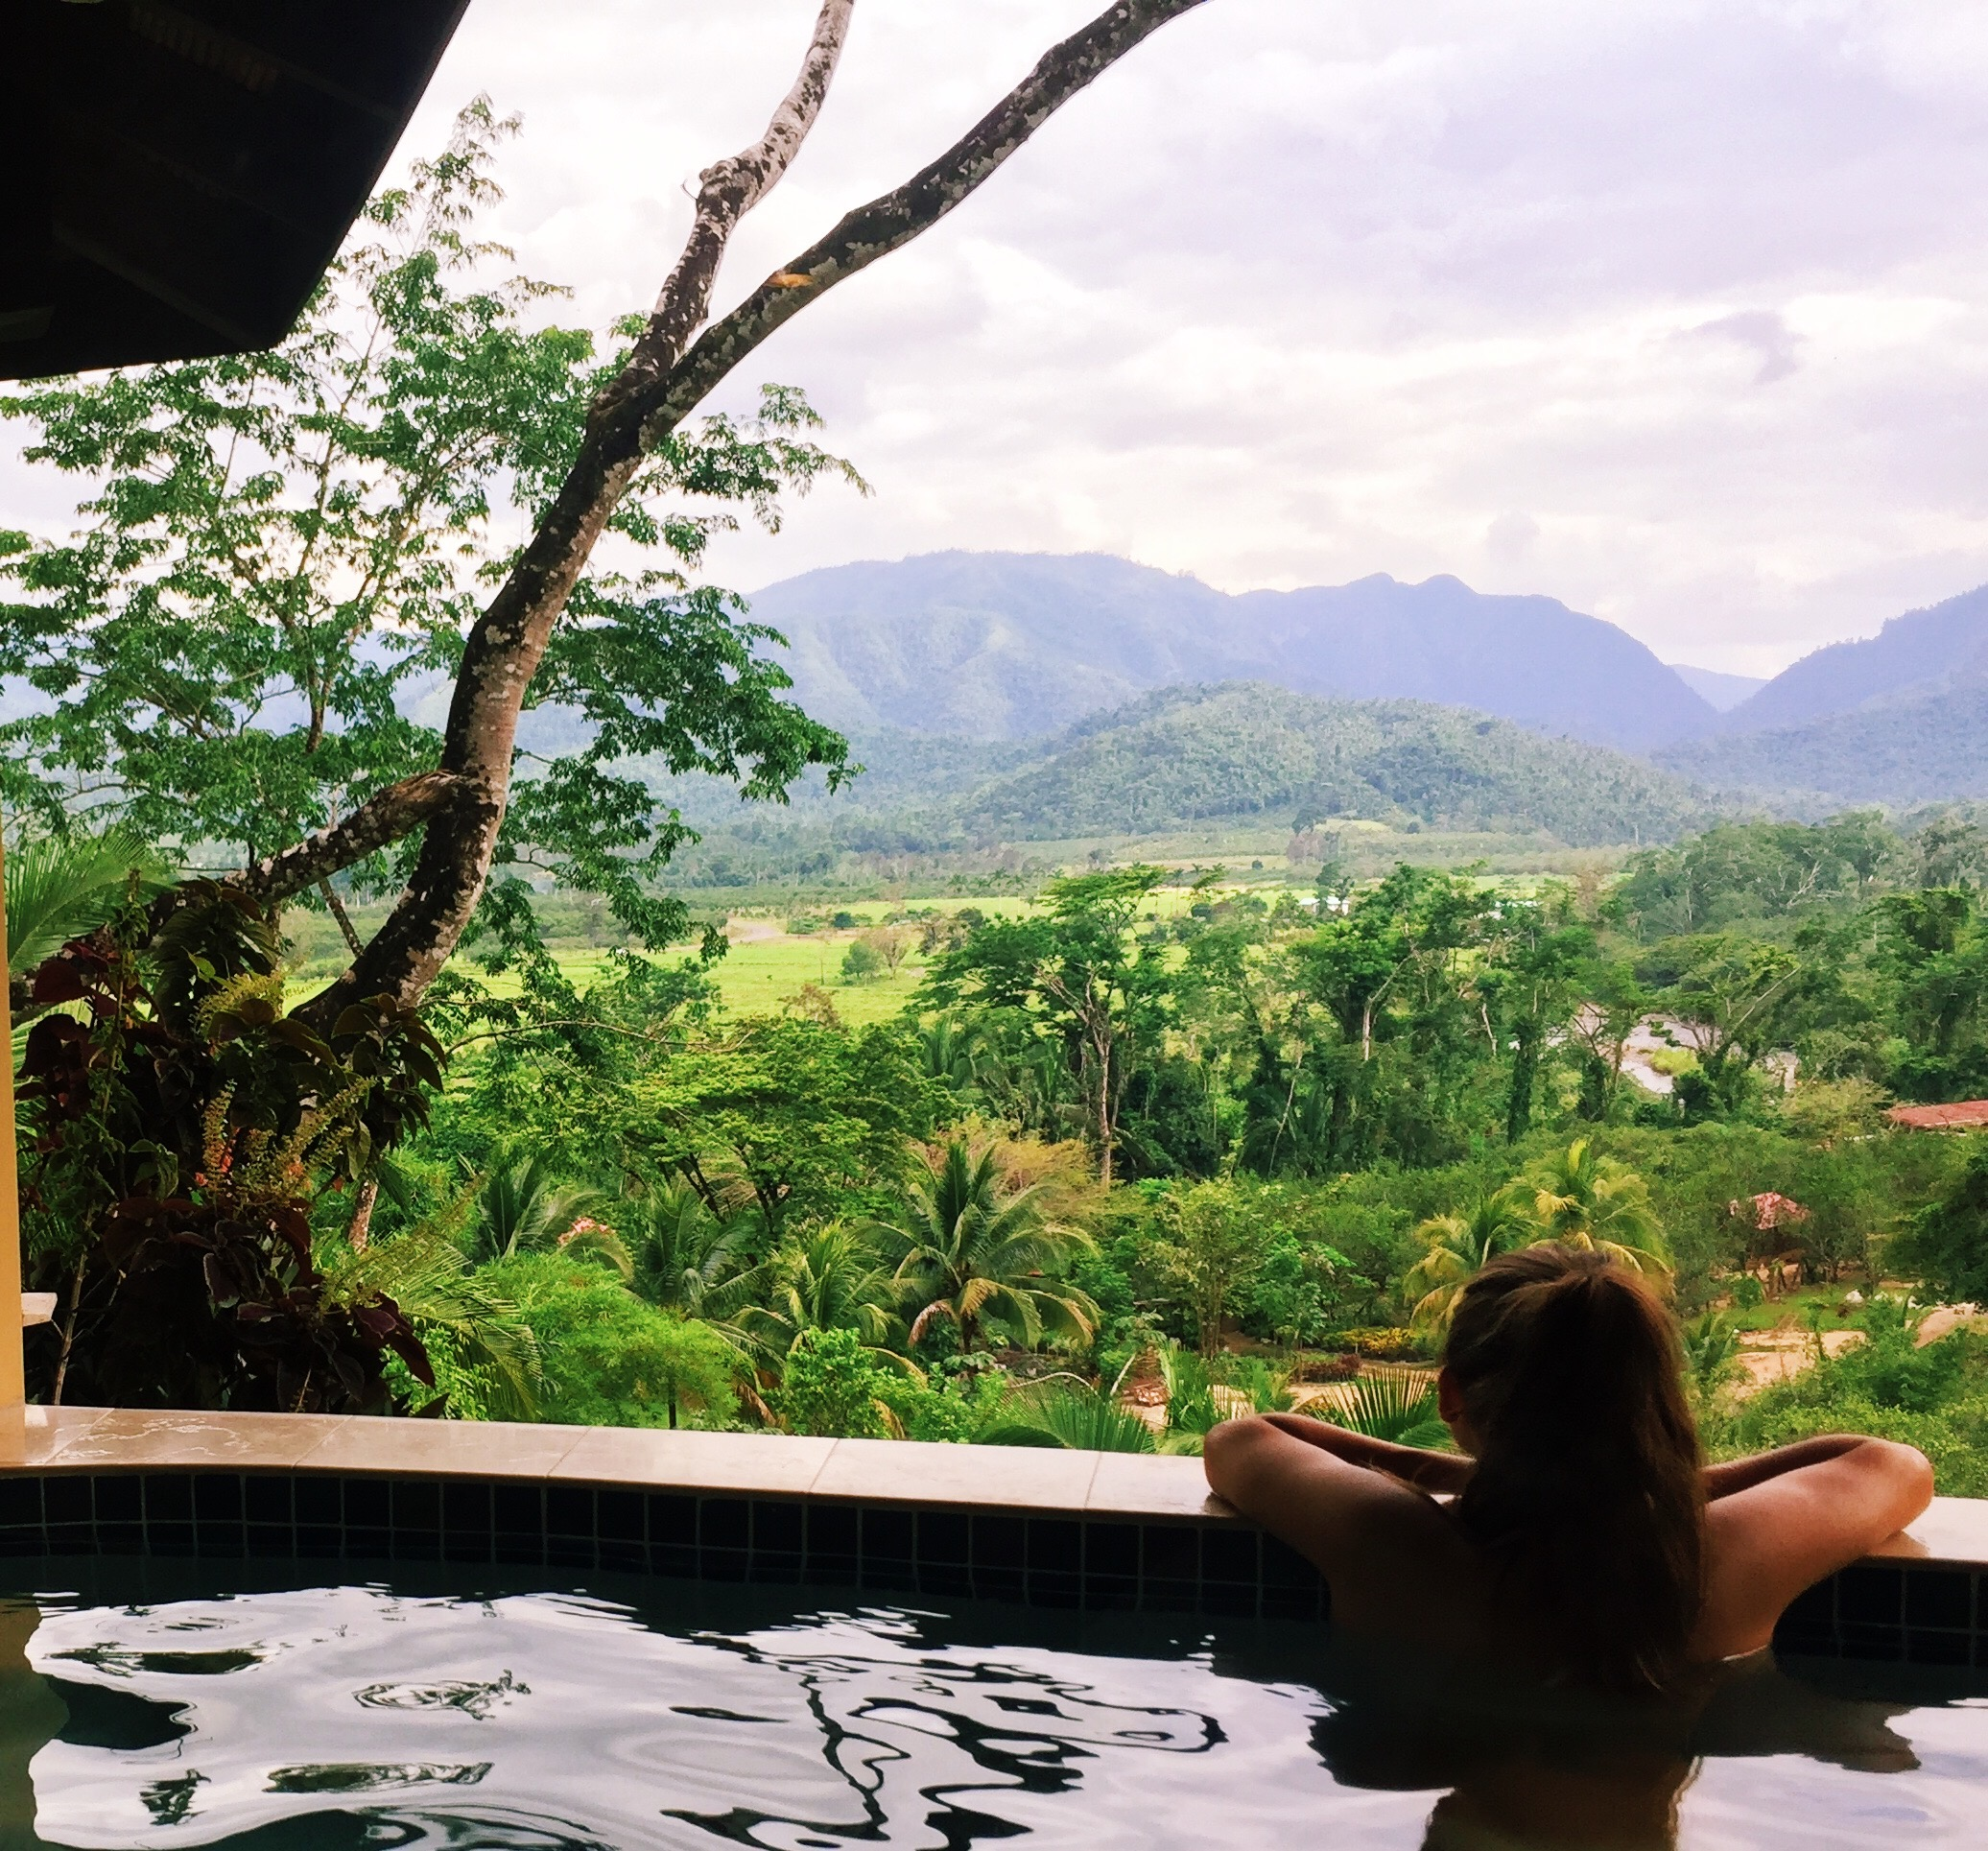 Peering out at the sleeping giant from the private plunge pool